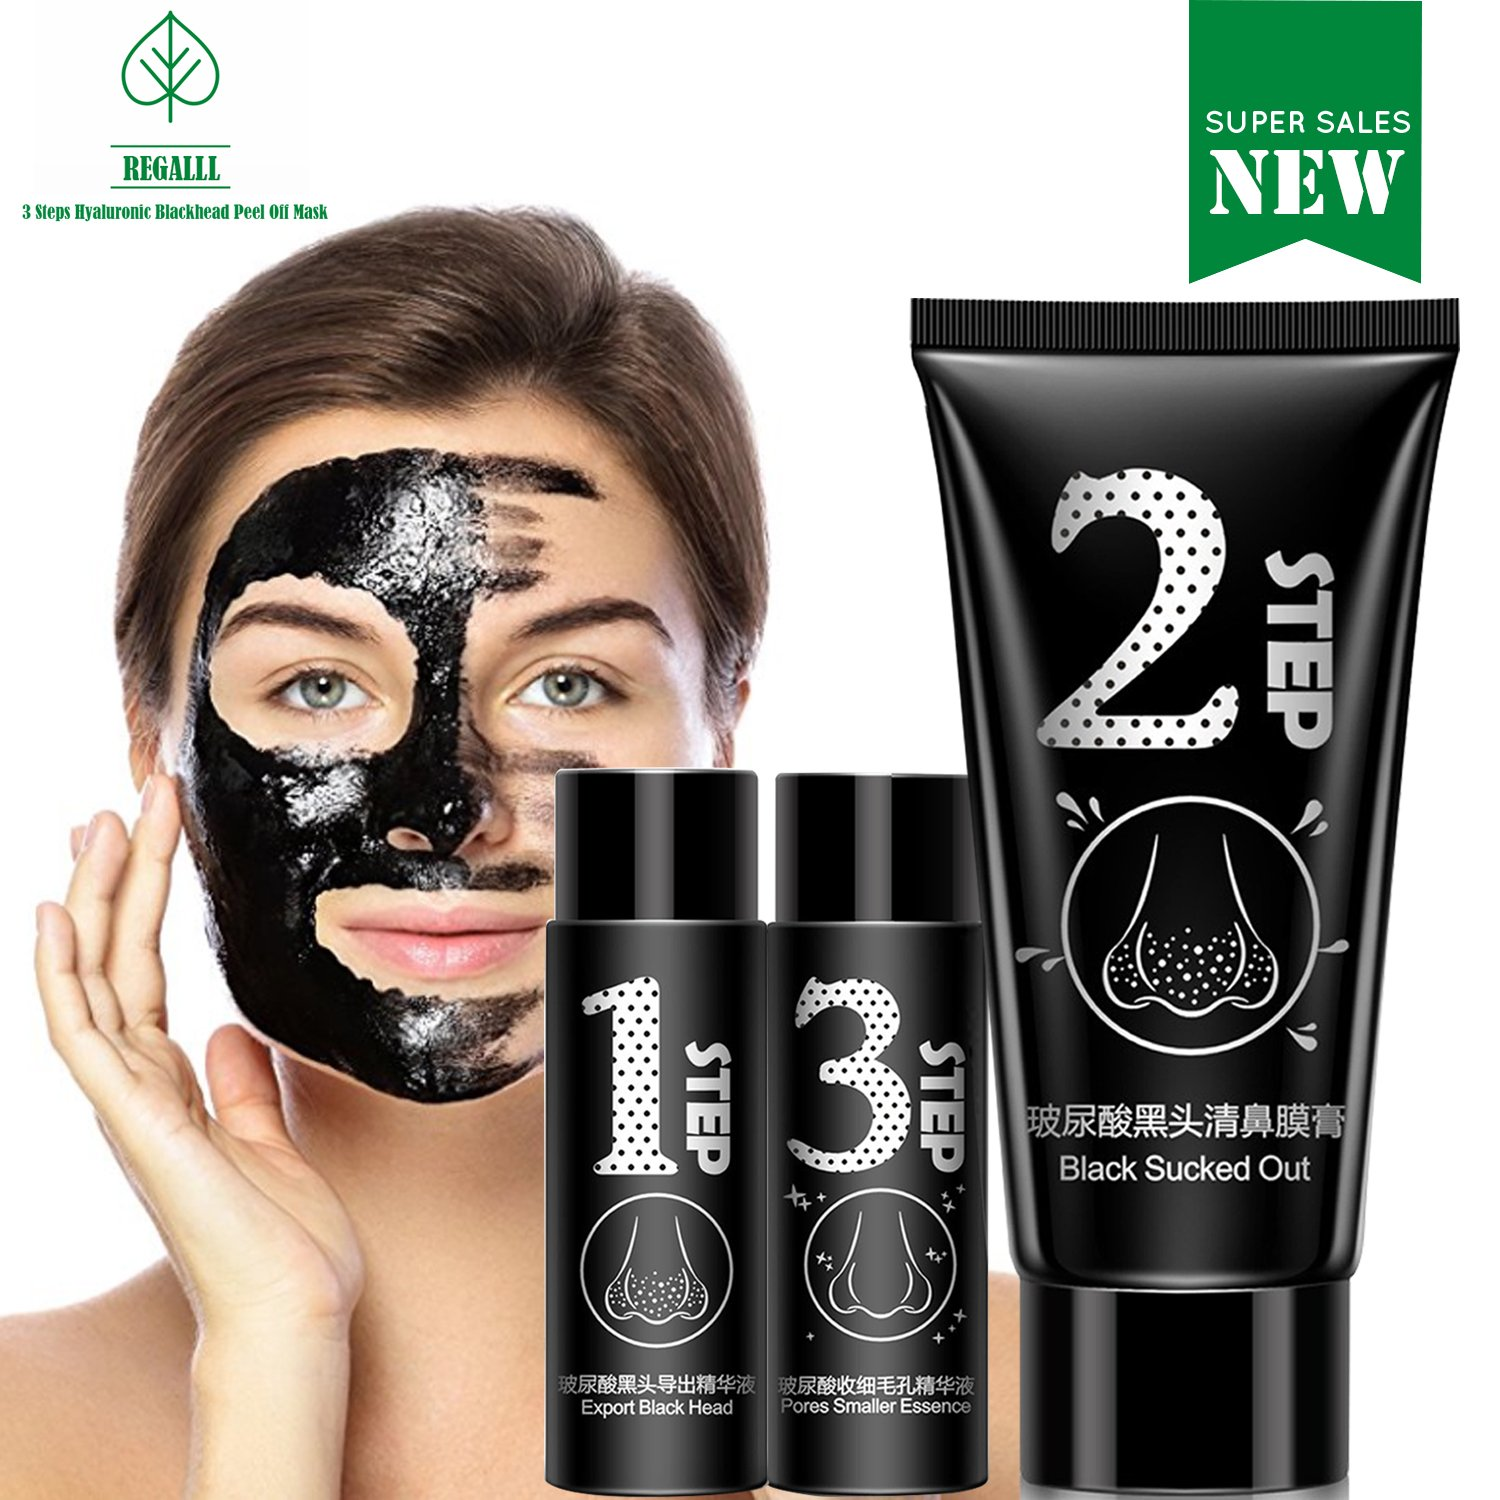 (NEW) Blackhead Remover Mask - Blackhead Peel Off Mask - Activated Charcoal Blackhead Remover –Face Mask, Blackhead Mask - Black Mask Deep Cleaning Facial Mask for Face Nose